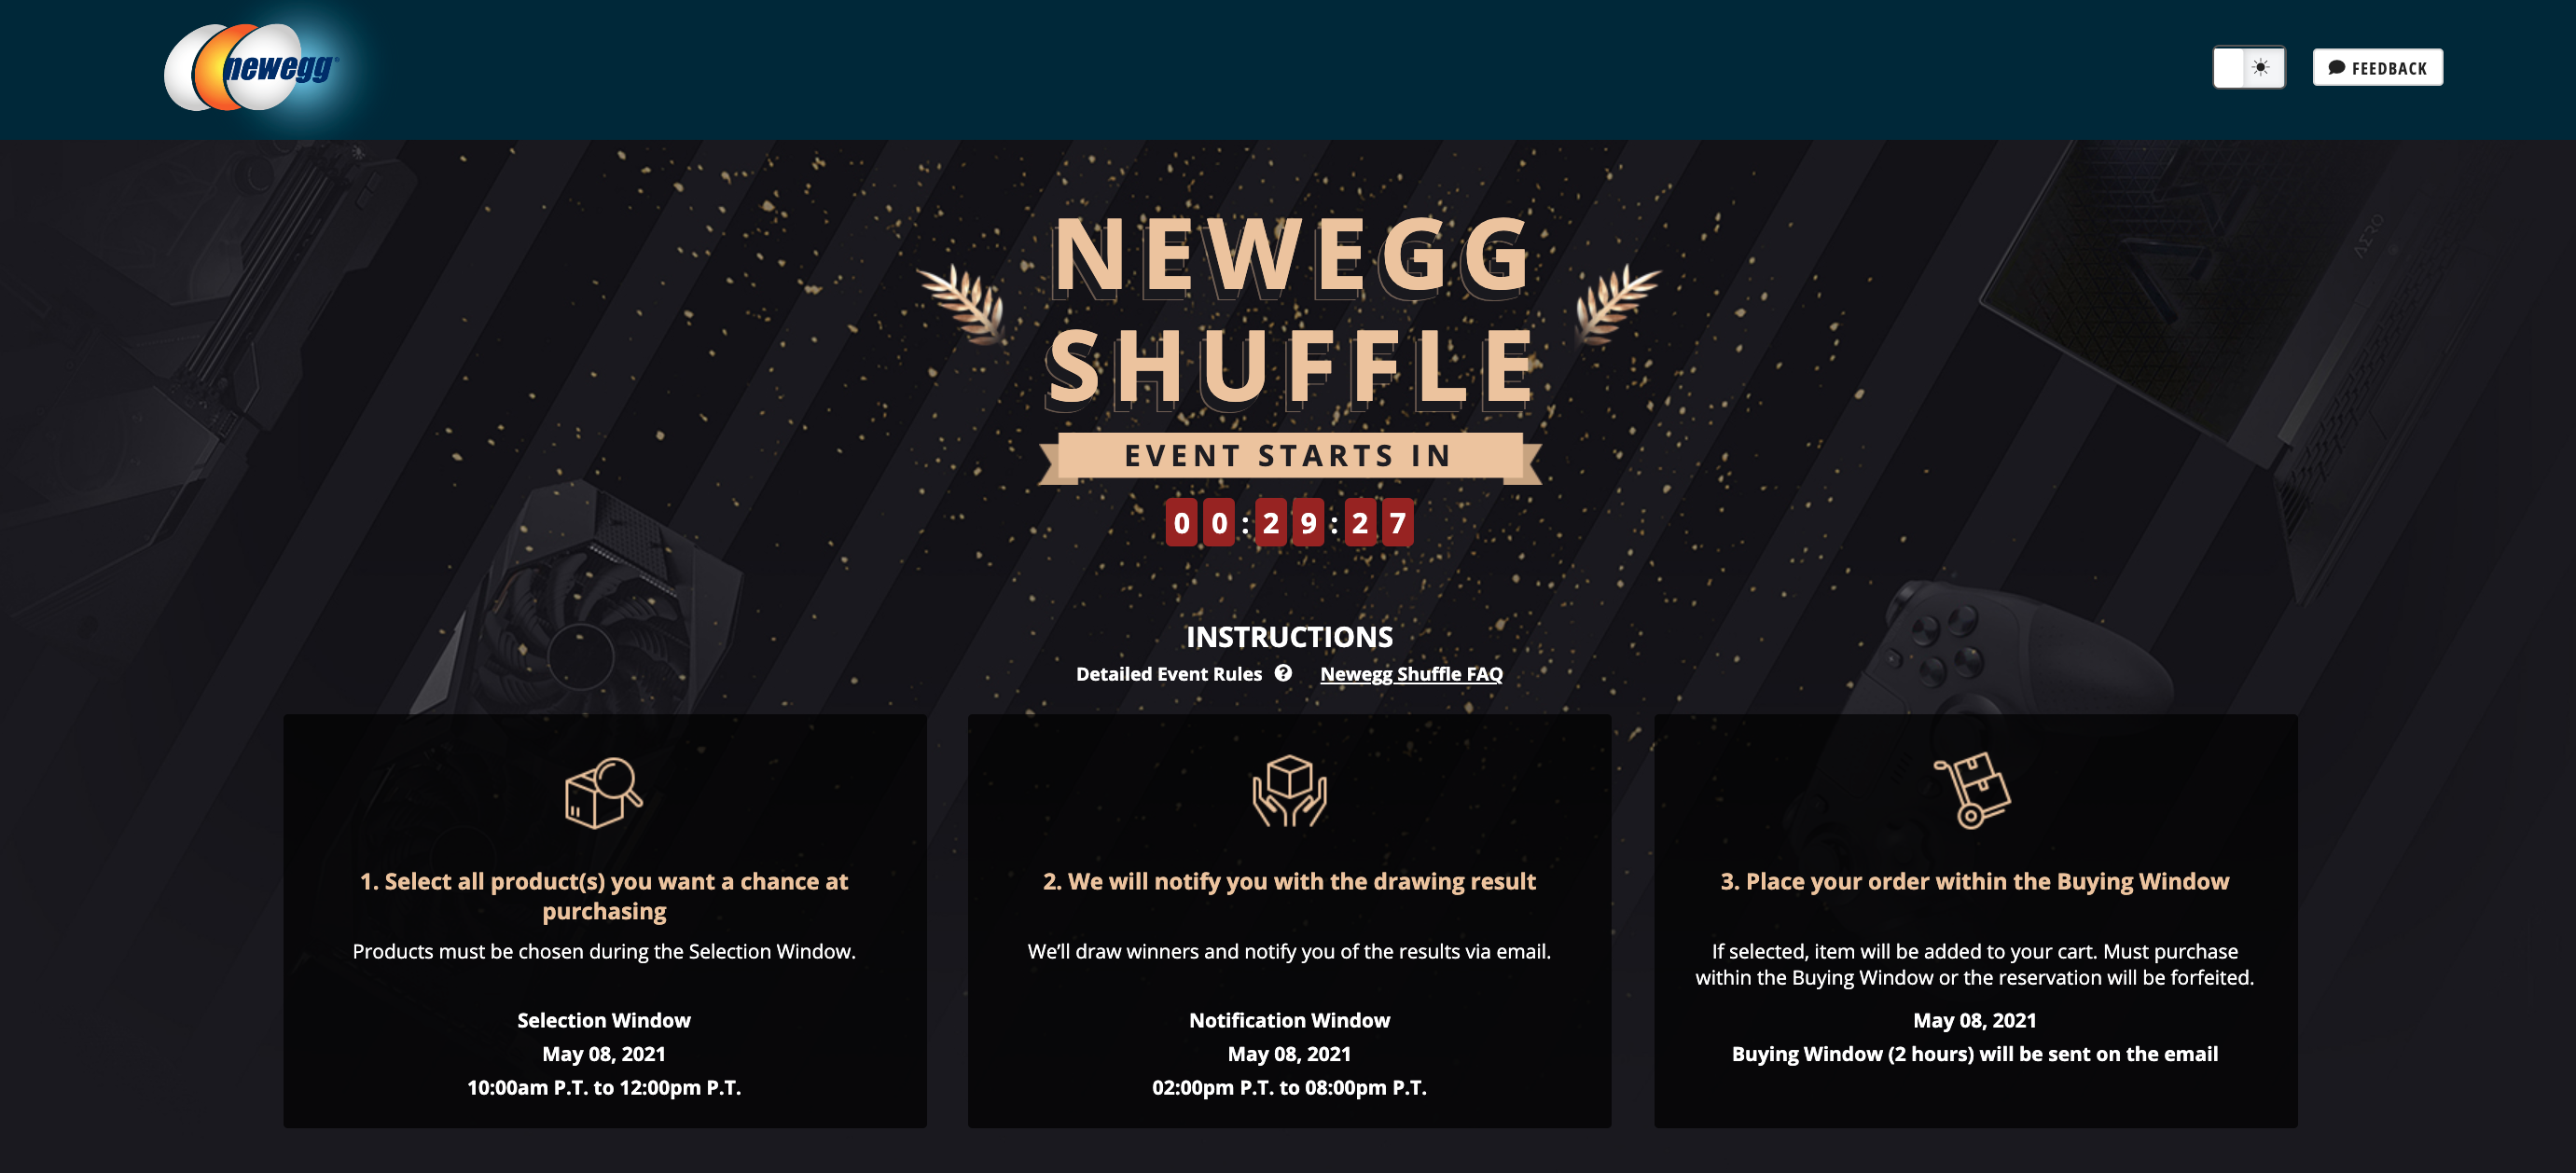 Newegg Shuffle – May 10th: Both NVIDIA GeForce RTX 30 Series & AMD Radeon RX 6000 Series Graphics Cards Available Today